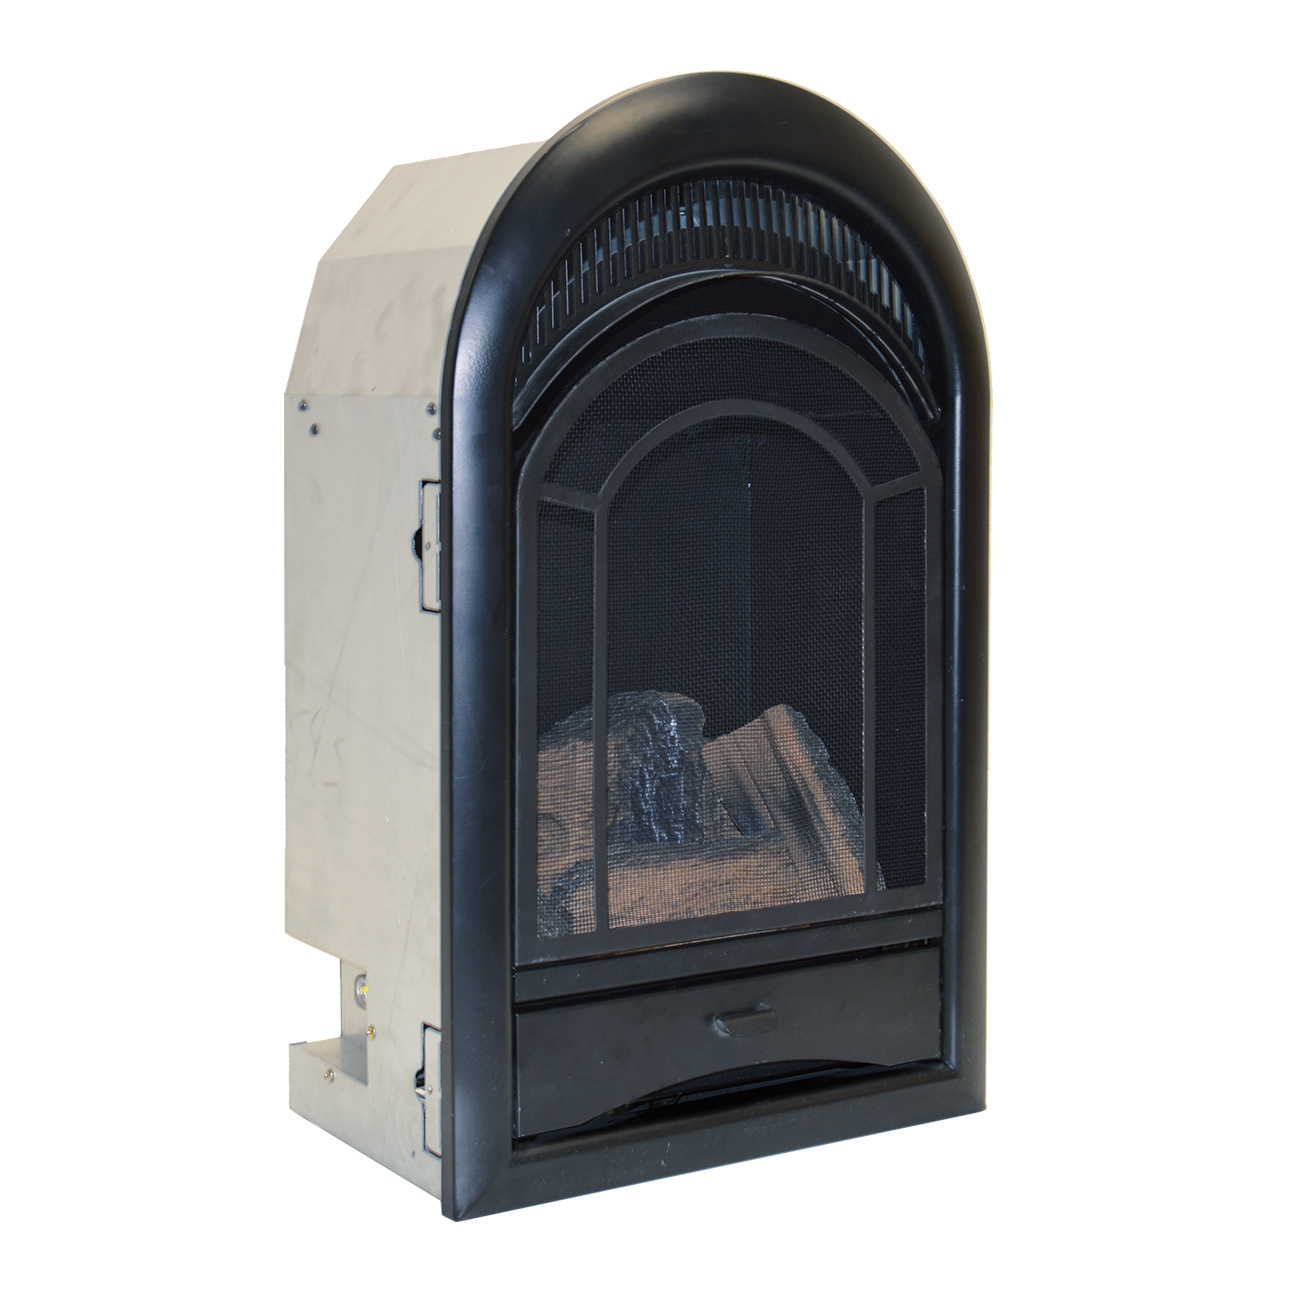 Ventless Fireplace Insert Thermostat Control Arched Door